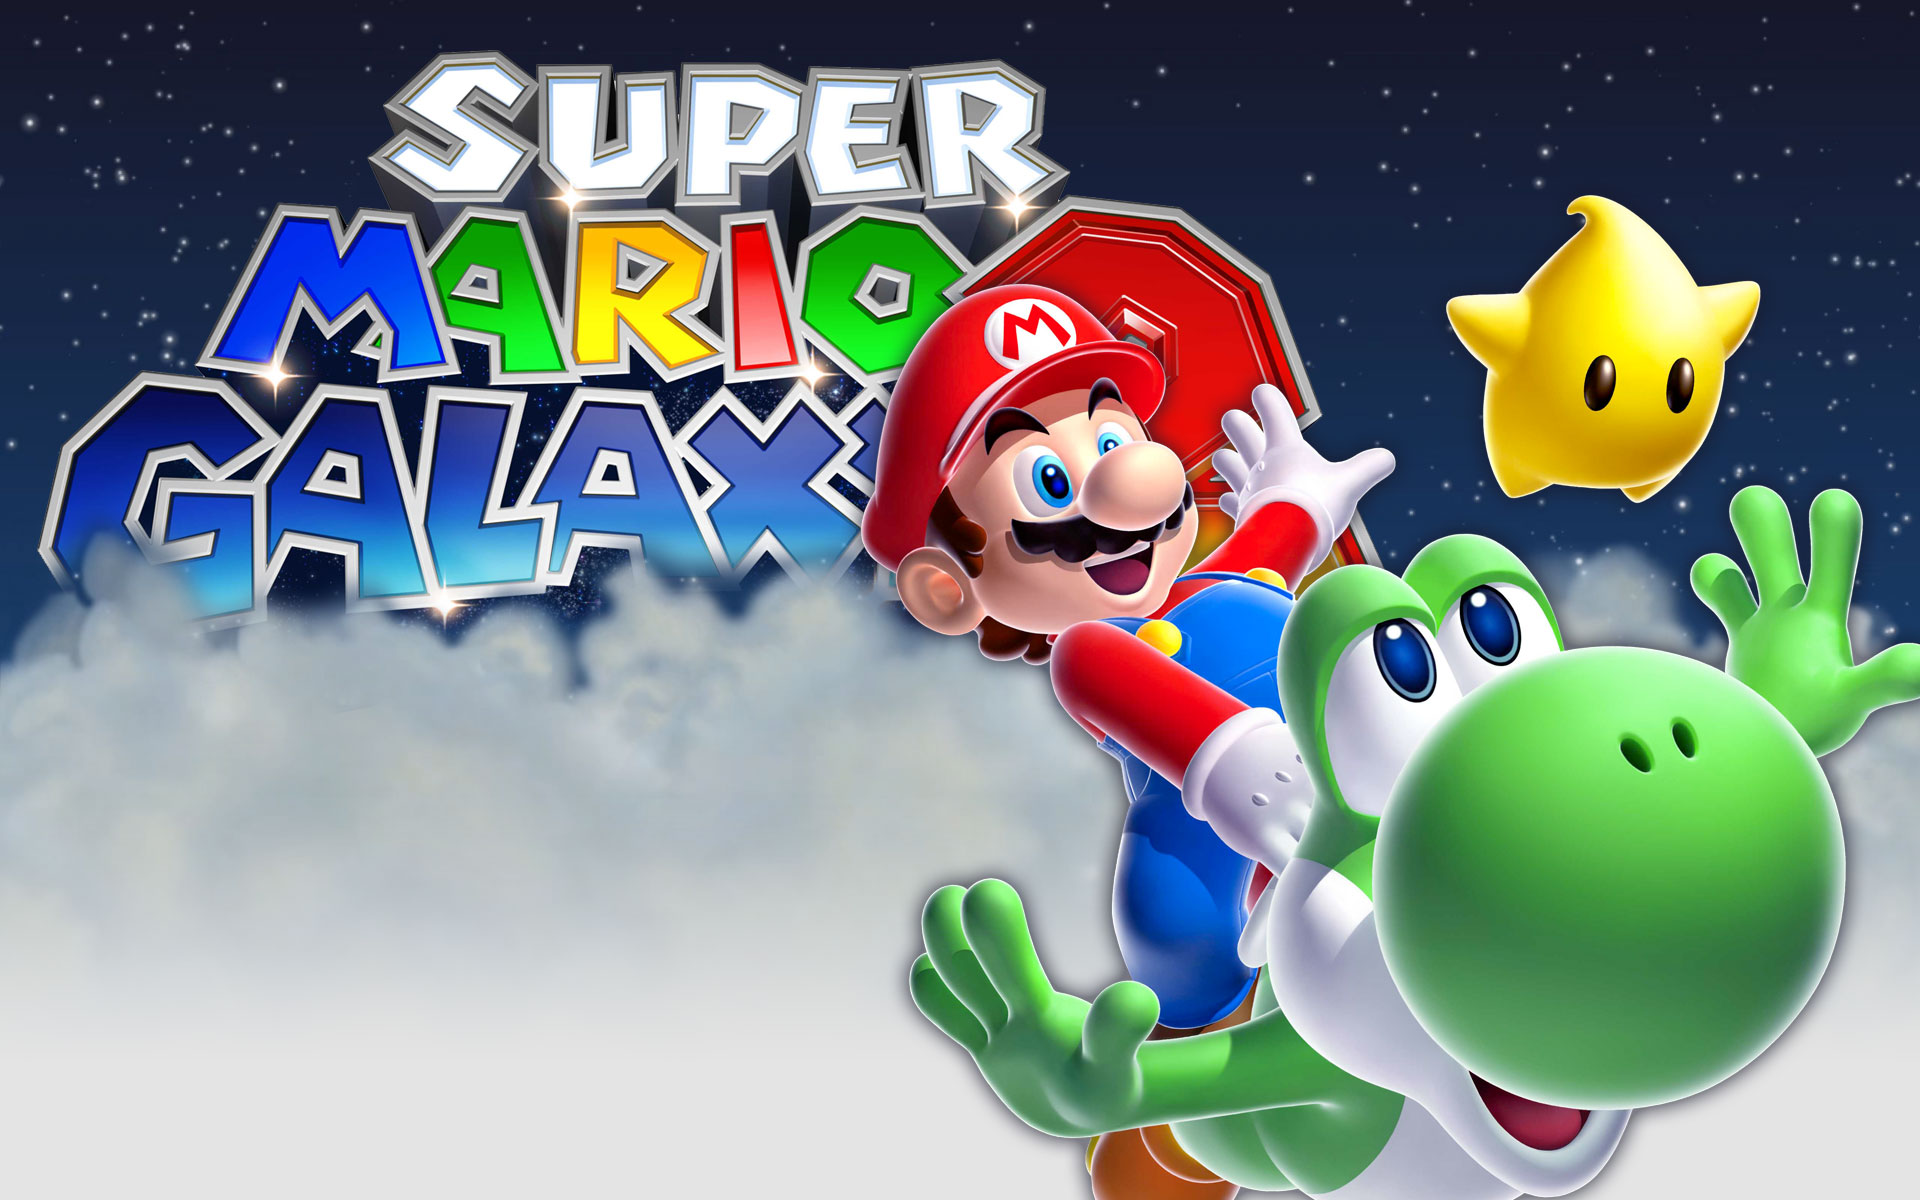 Super Mario Galaxy 2 Wallpaper Video Games Blogger